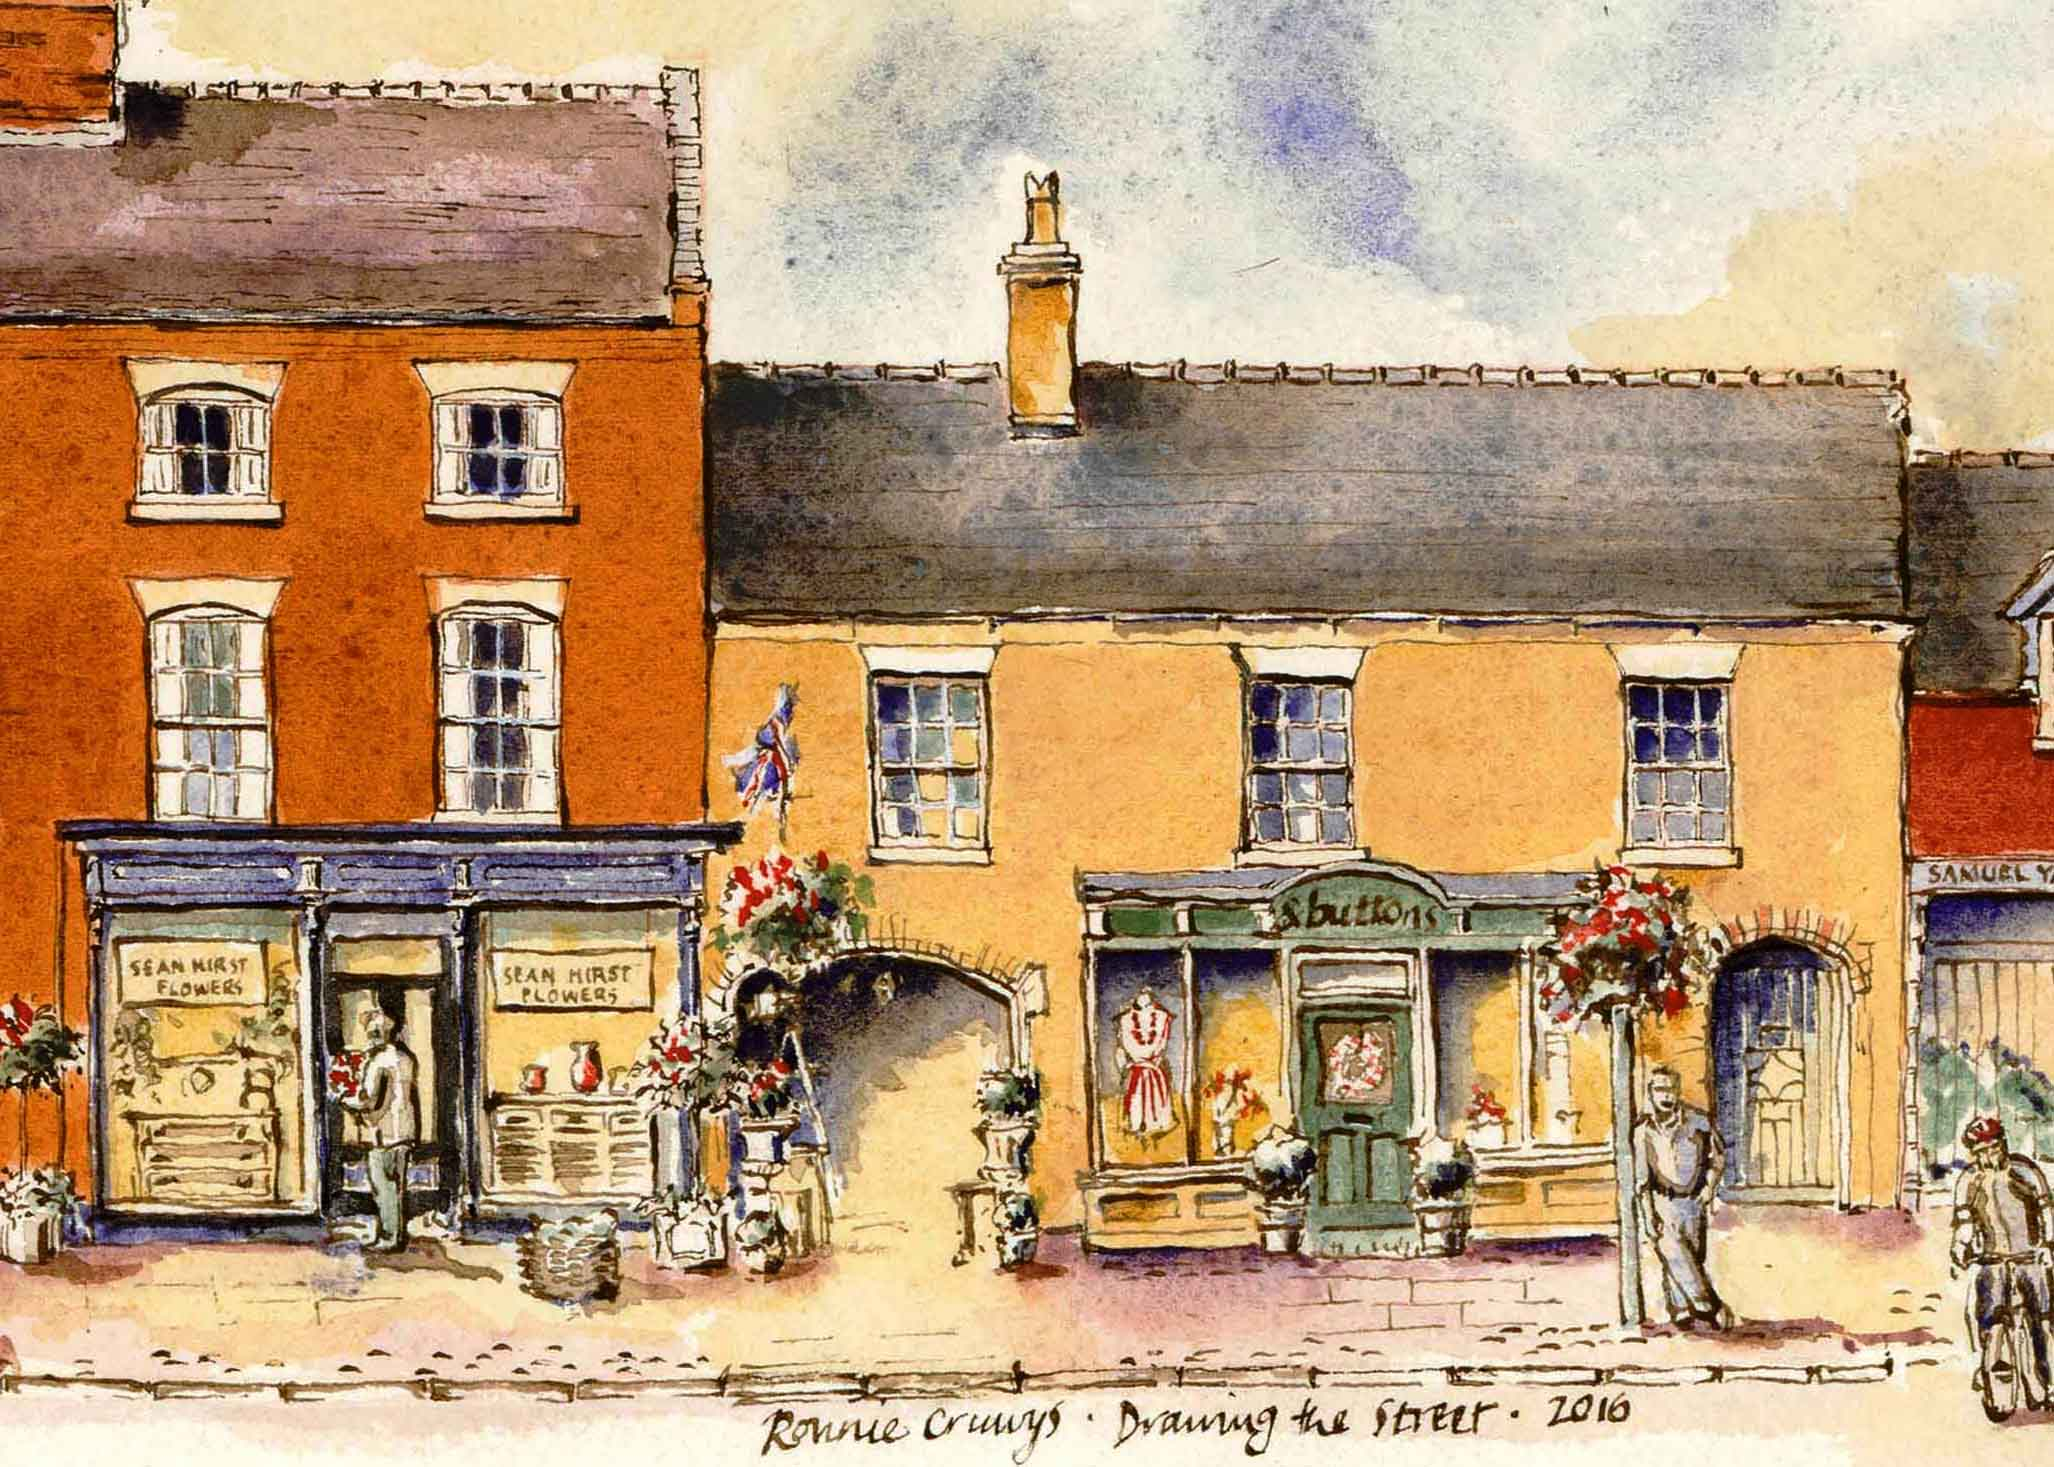 Drawing of Sean Hirst Flowers Eccleshall Staffordshire